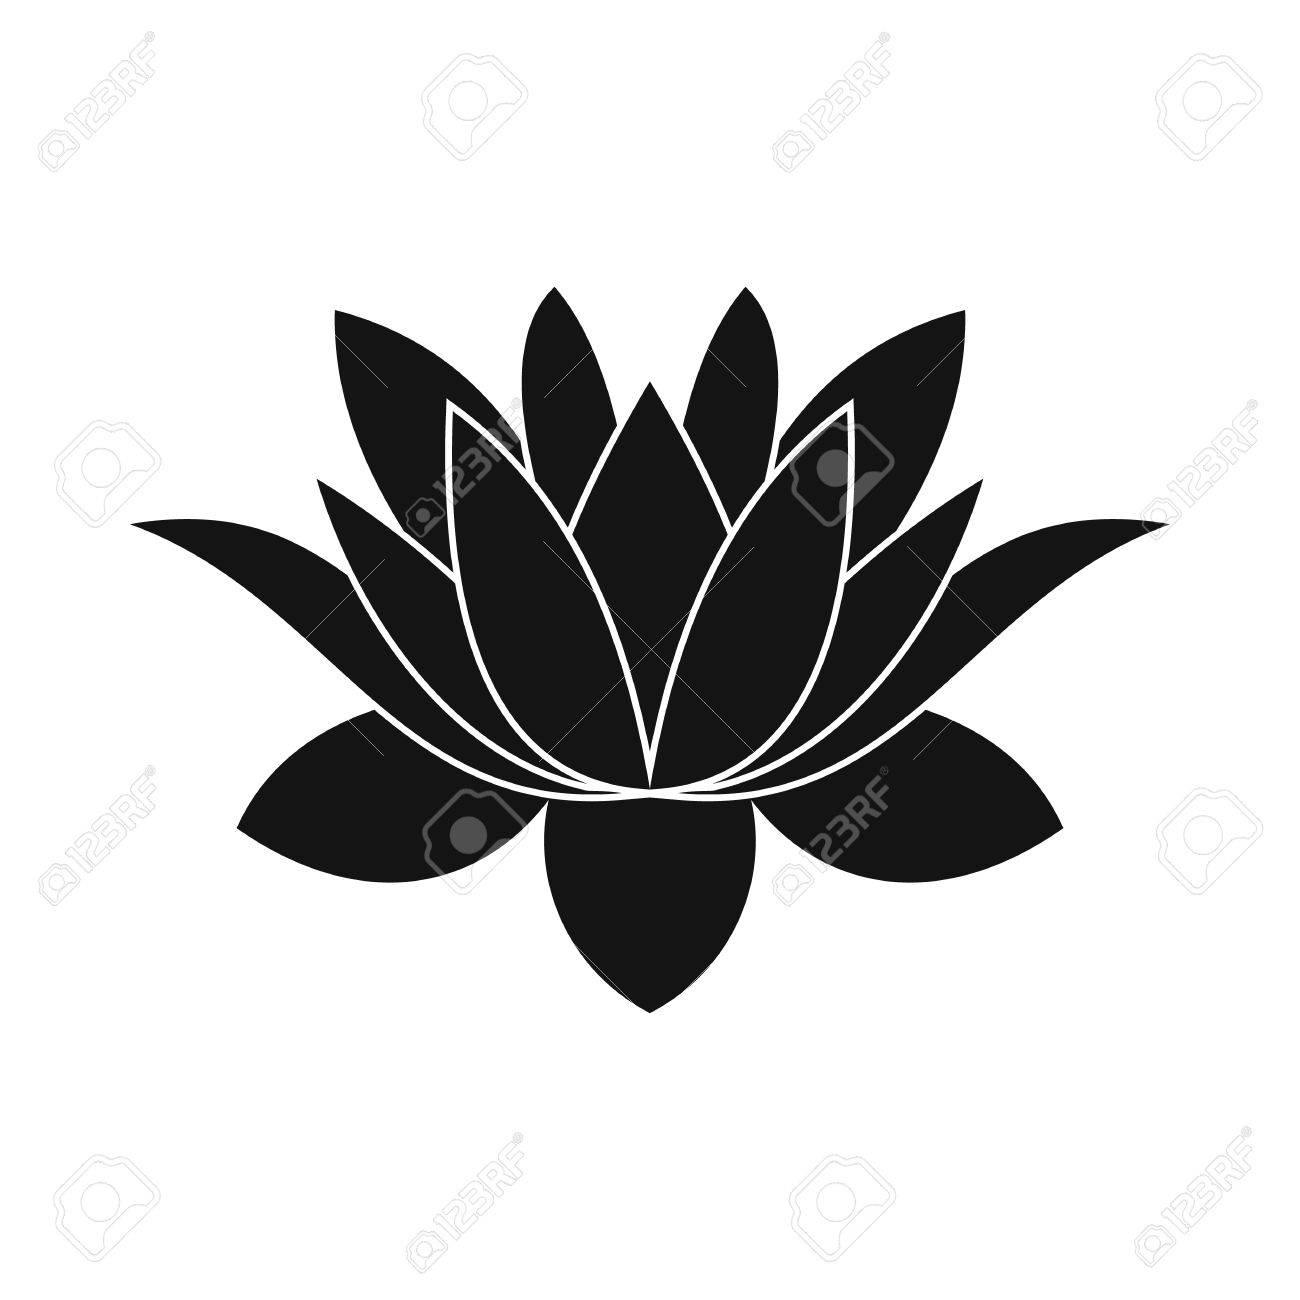 lotus flower icon in simple style isolated on white - 52507959